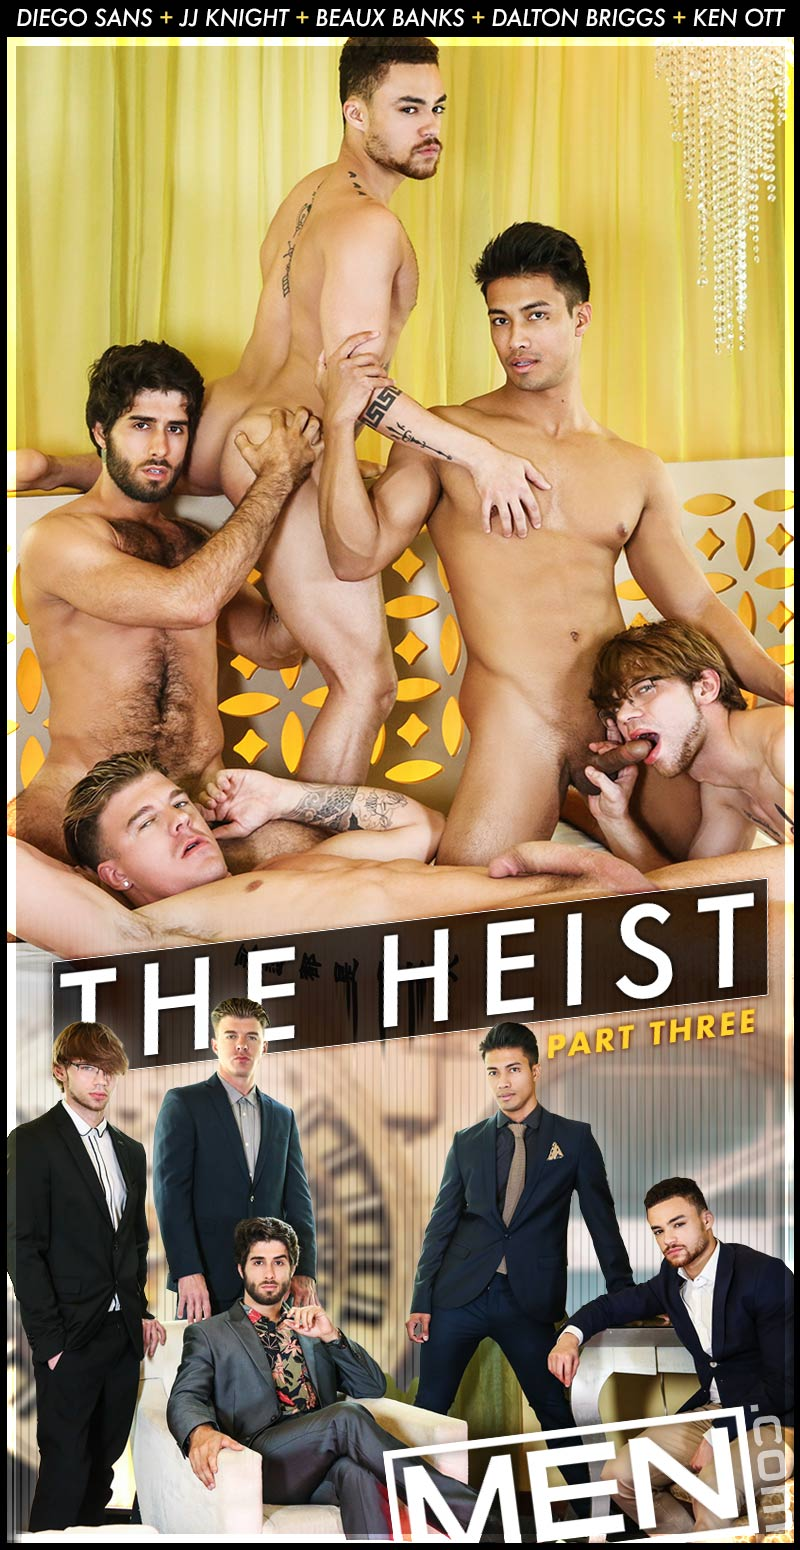 The Heist, Finale (Diego Sans, Ken Ott, JJ Knight, Beaux Banks and Dalton Briggs) at Drill My Hole